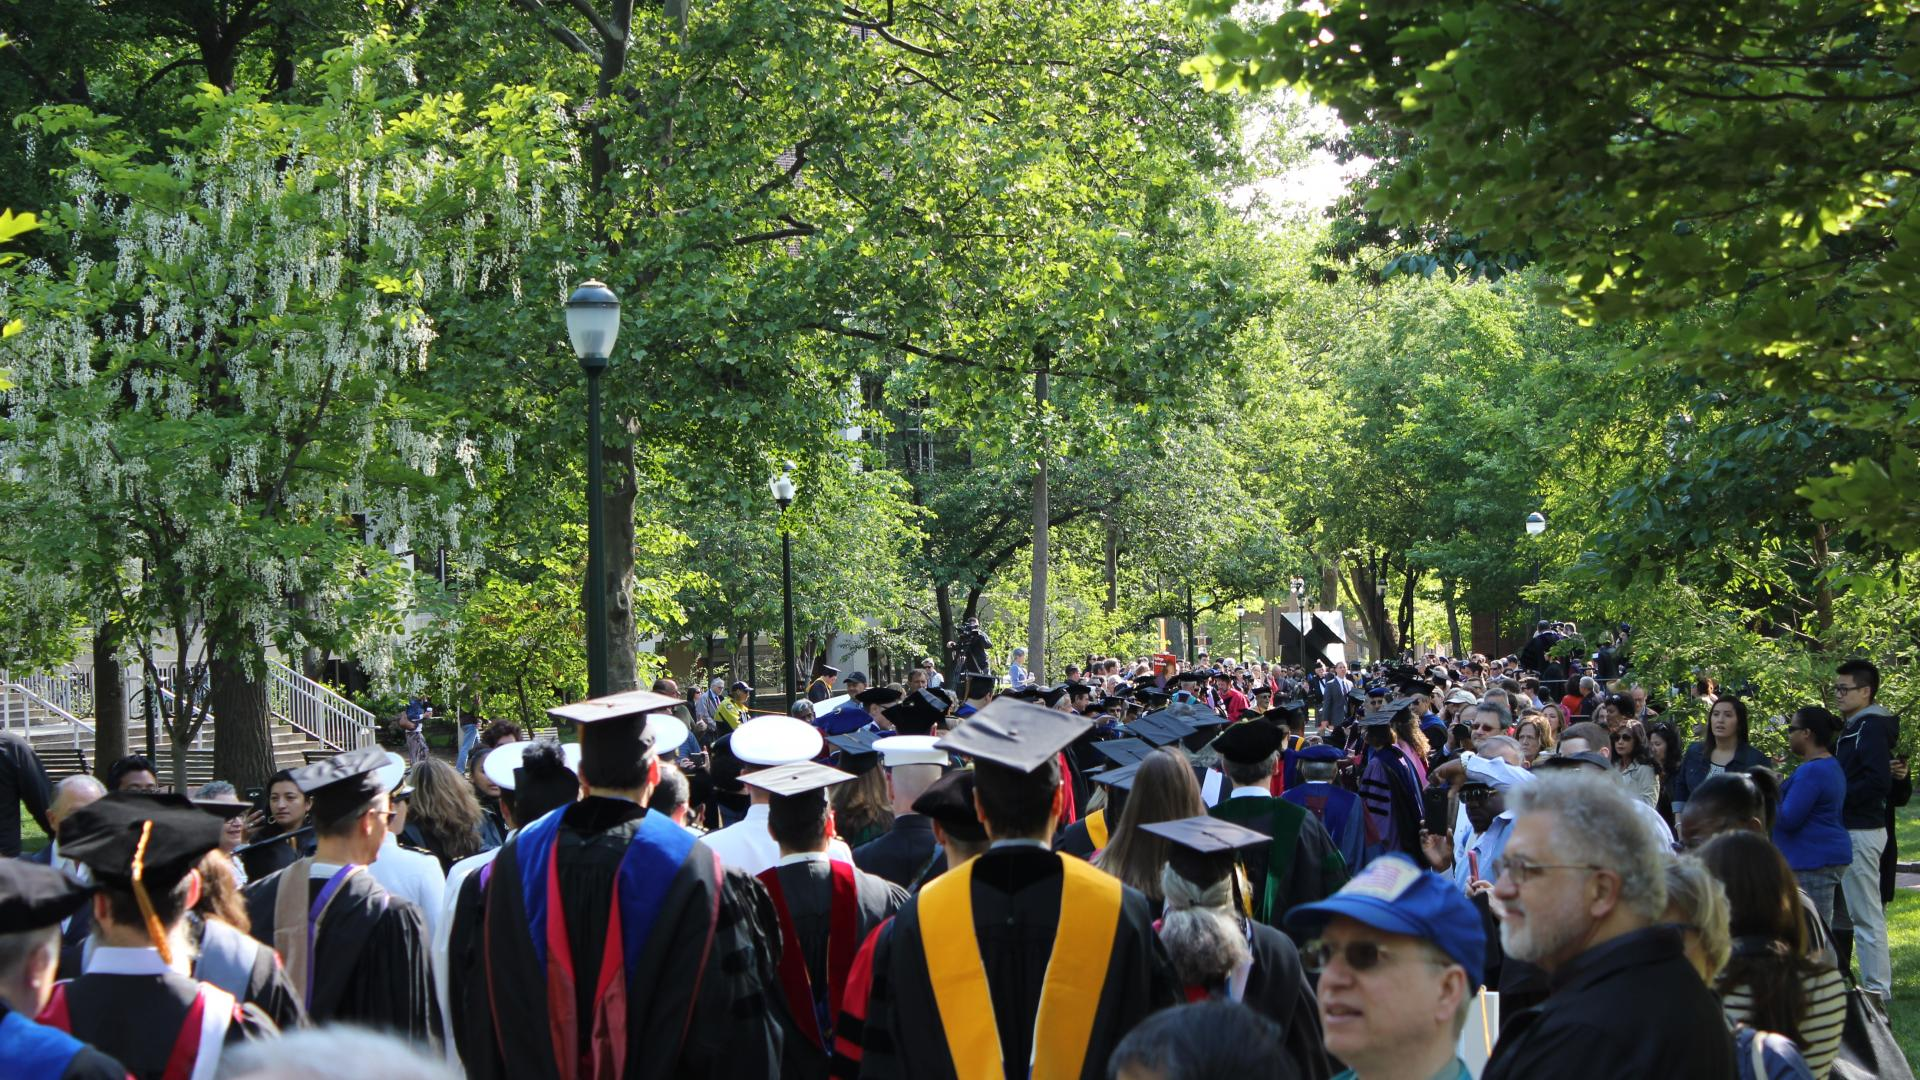 Students and families on Locust Walk for Commencement